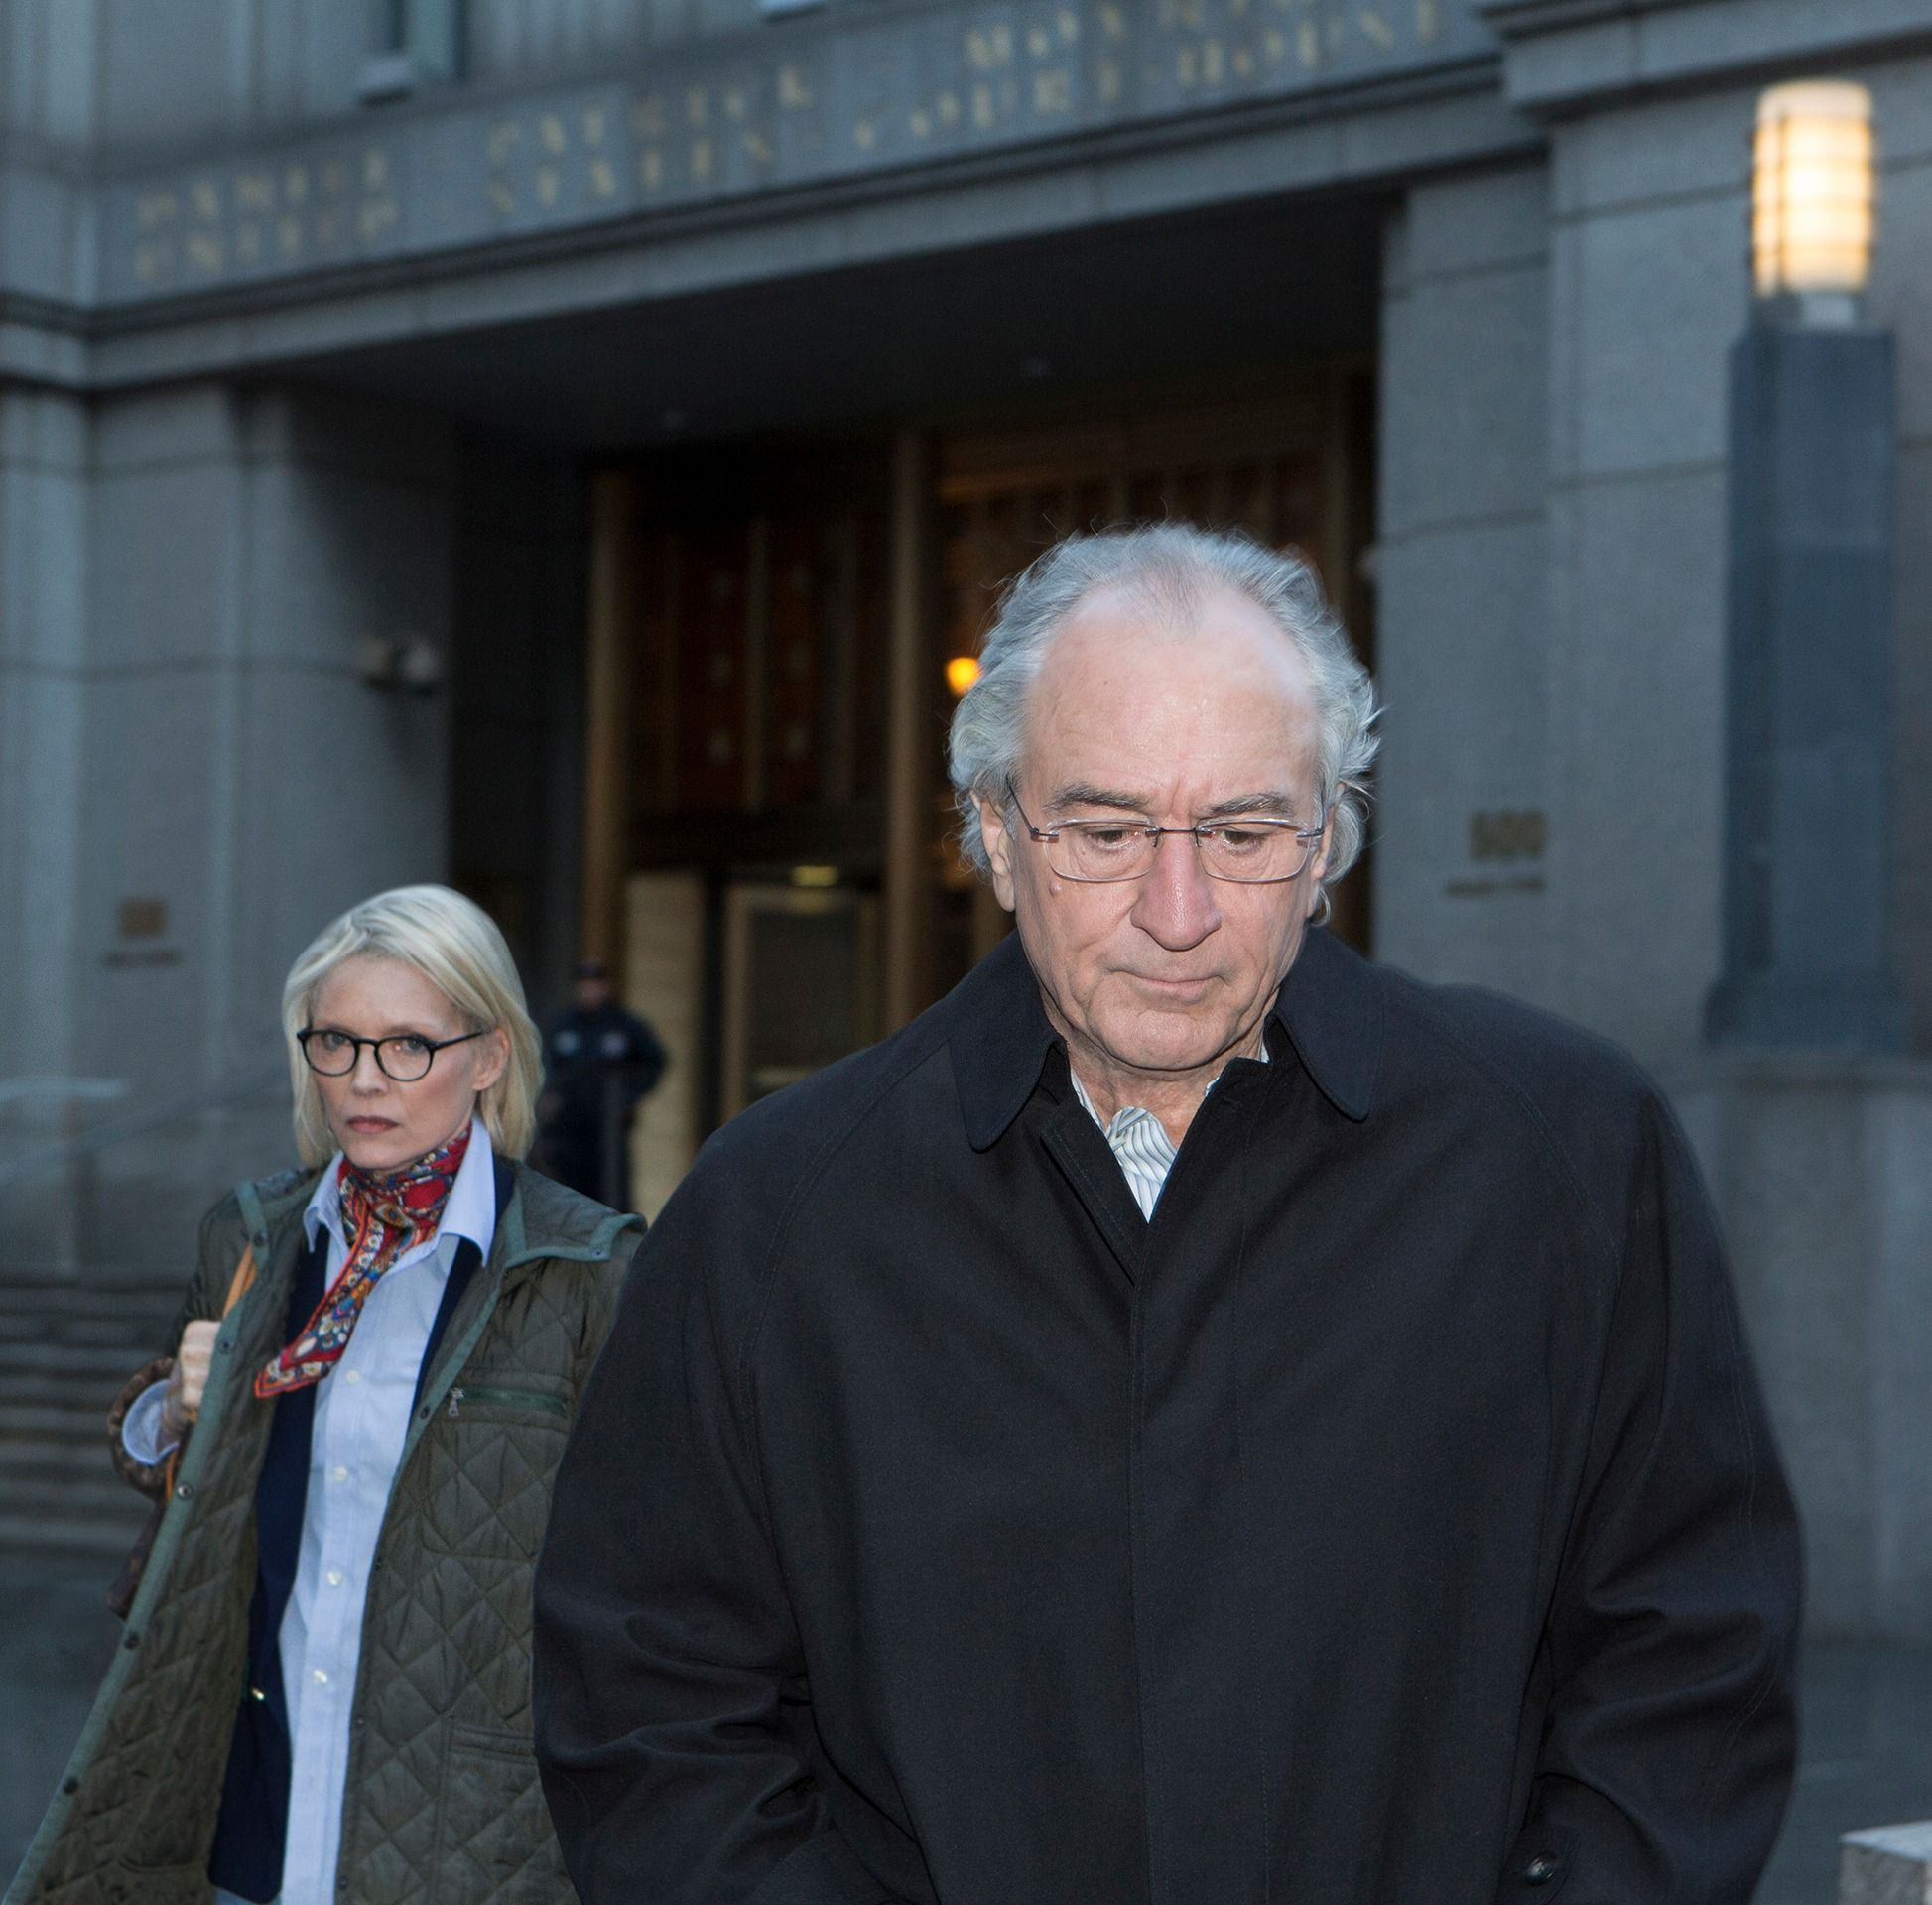 Robert DeNiro as Bernie Madoff